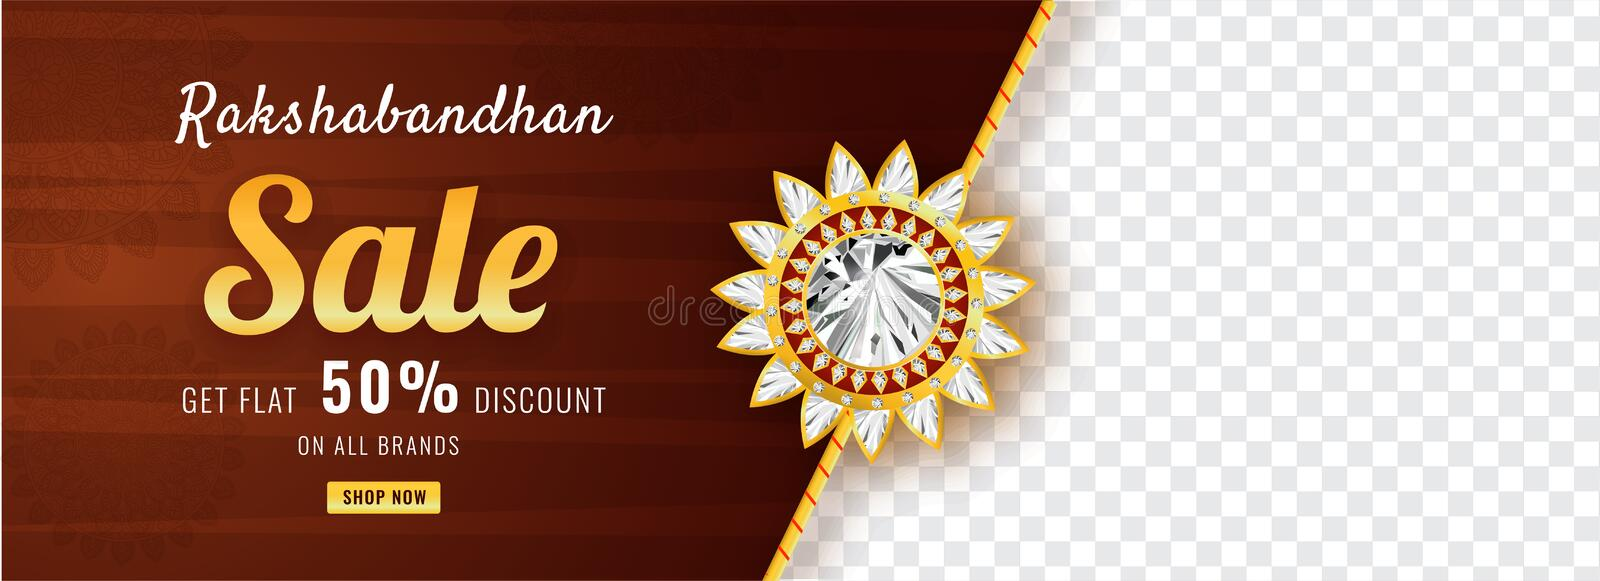 Raksha Bandhan sale social media header or banner design with 50% discount and space for your text. royalty free illustration